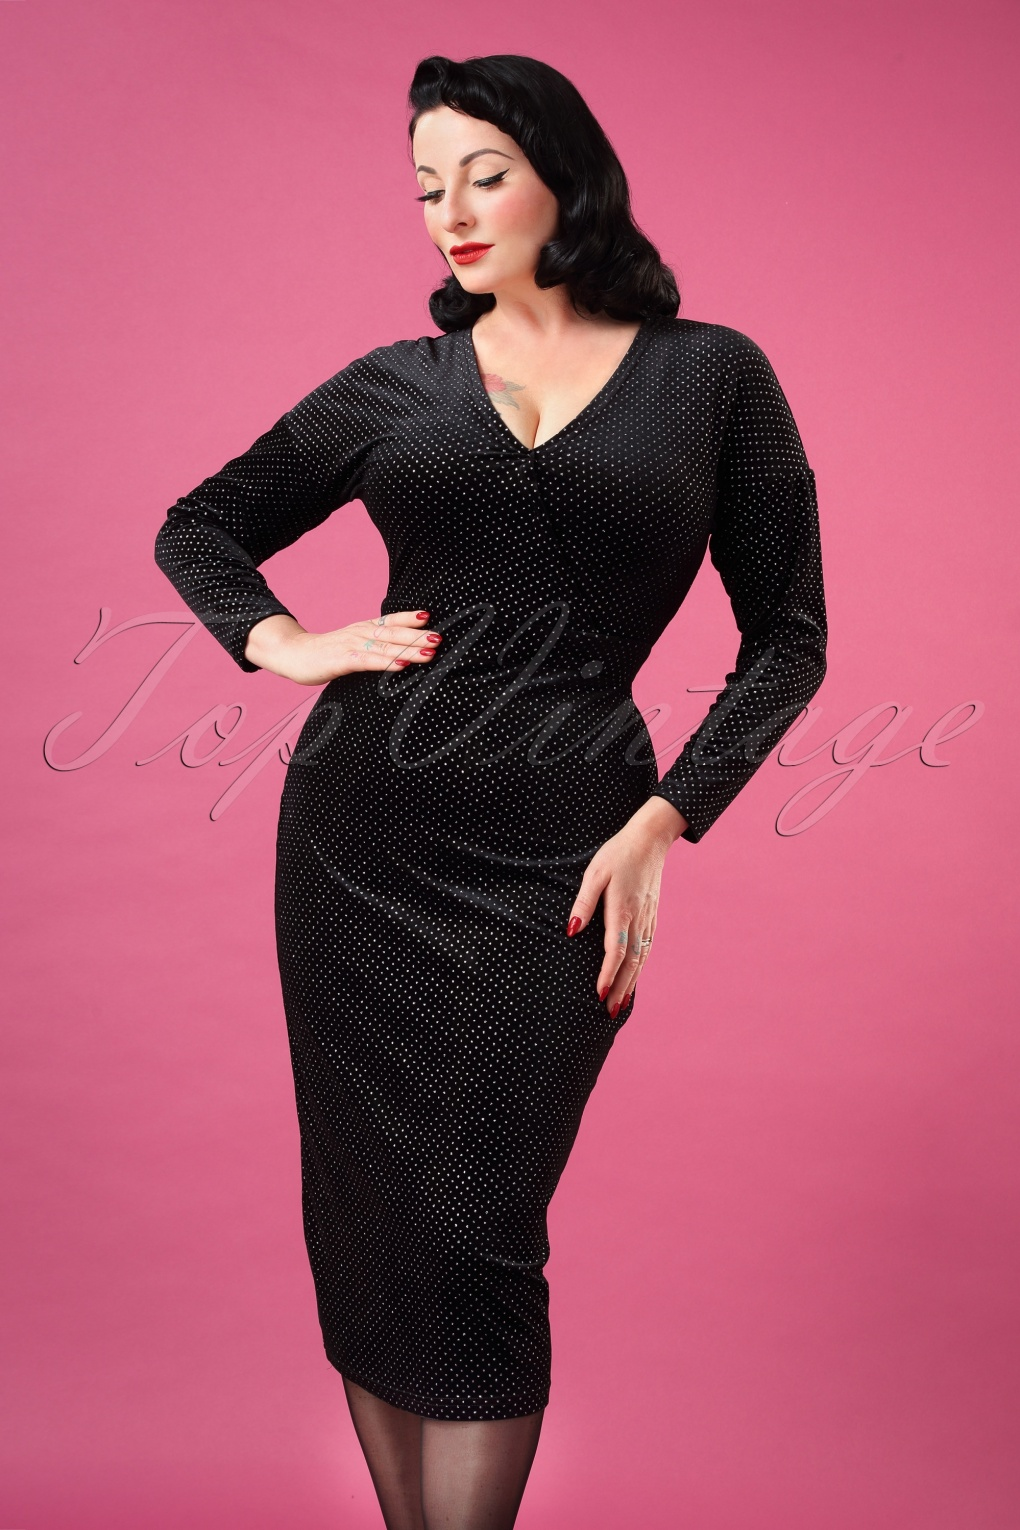 1960s Evening Dresses, Bridesmaids, Mothers Gowns 50s Metal Polka Velvet Pencil Dress in Black £27.35 AT vintagedancer.com